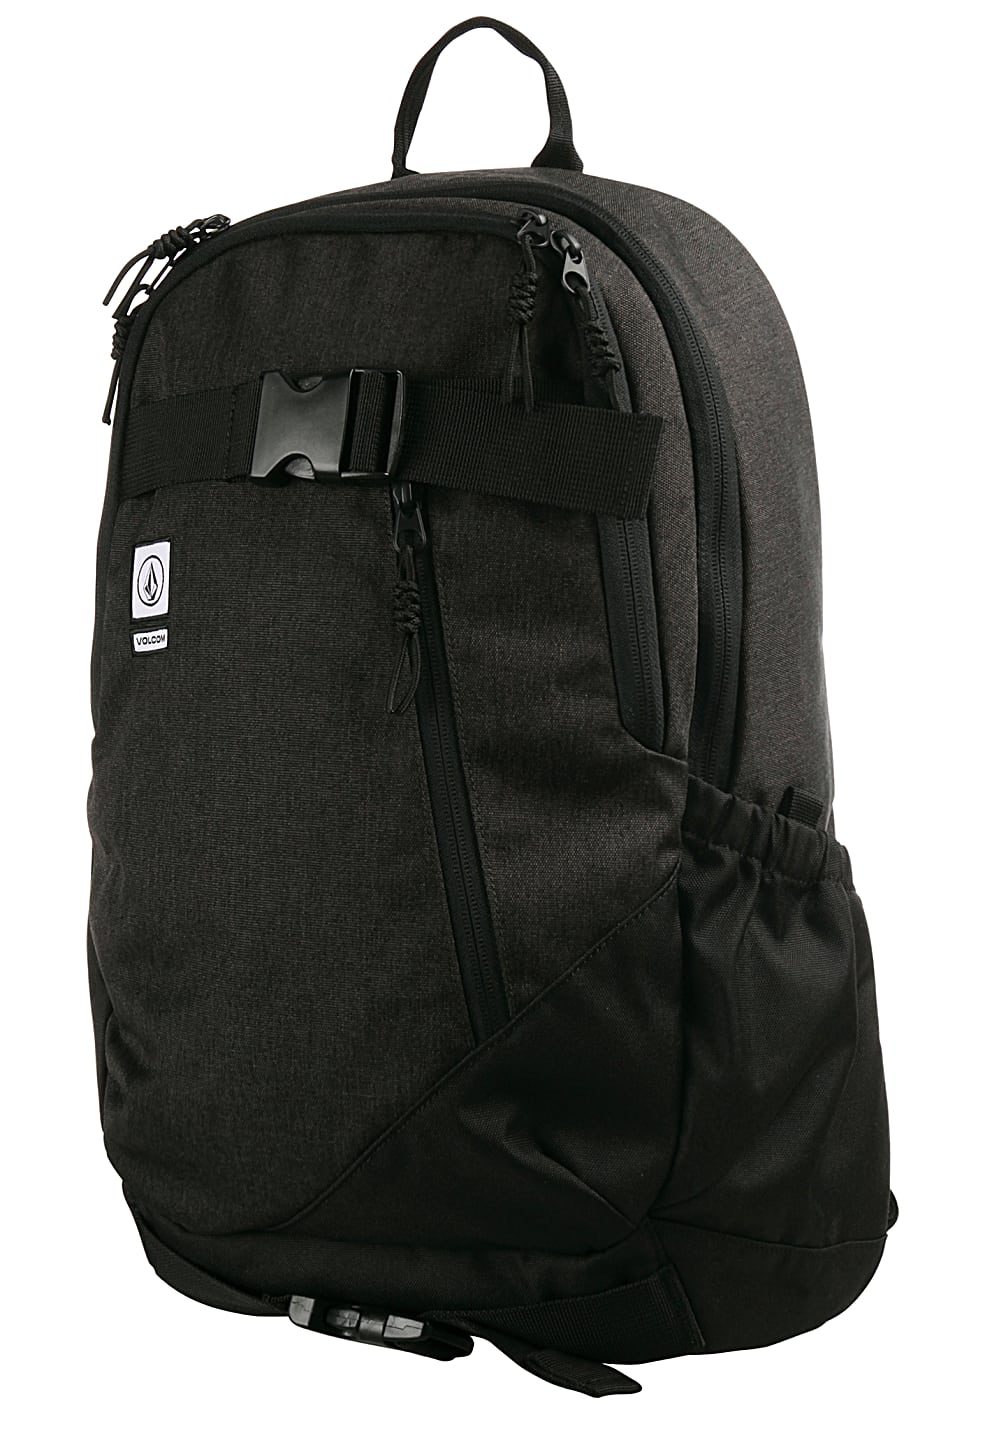 a79d39c4a Volcom Substrate - Backpack - Black - Planet Sports